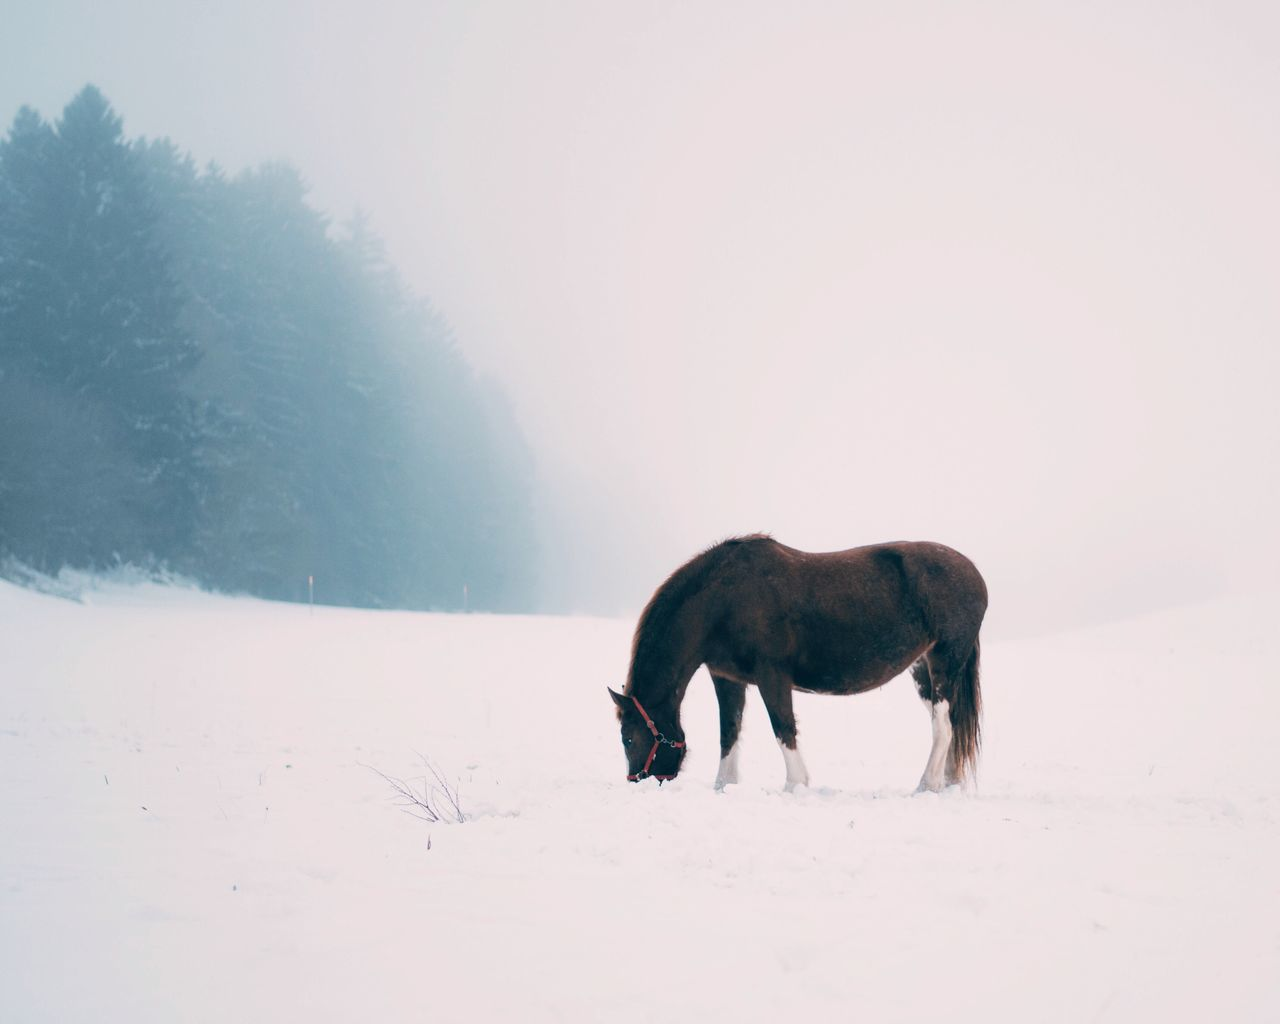 Side View Of Horse Grazing On Snow Covered Field During Foggy Weather